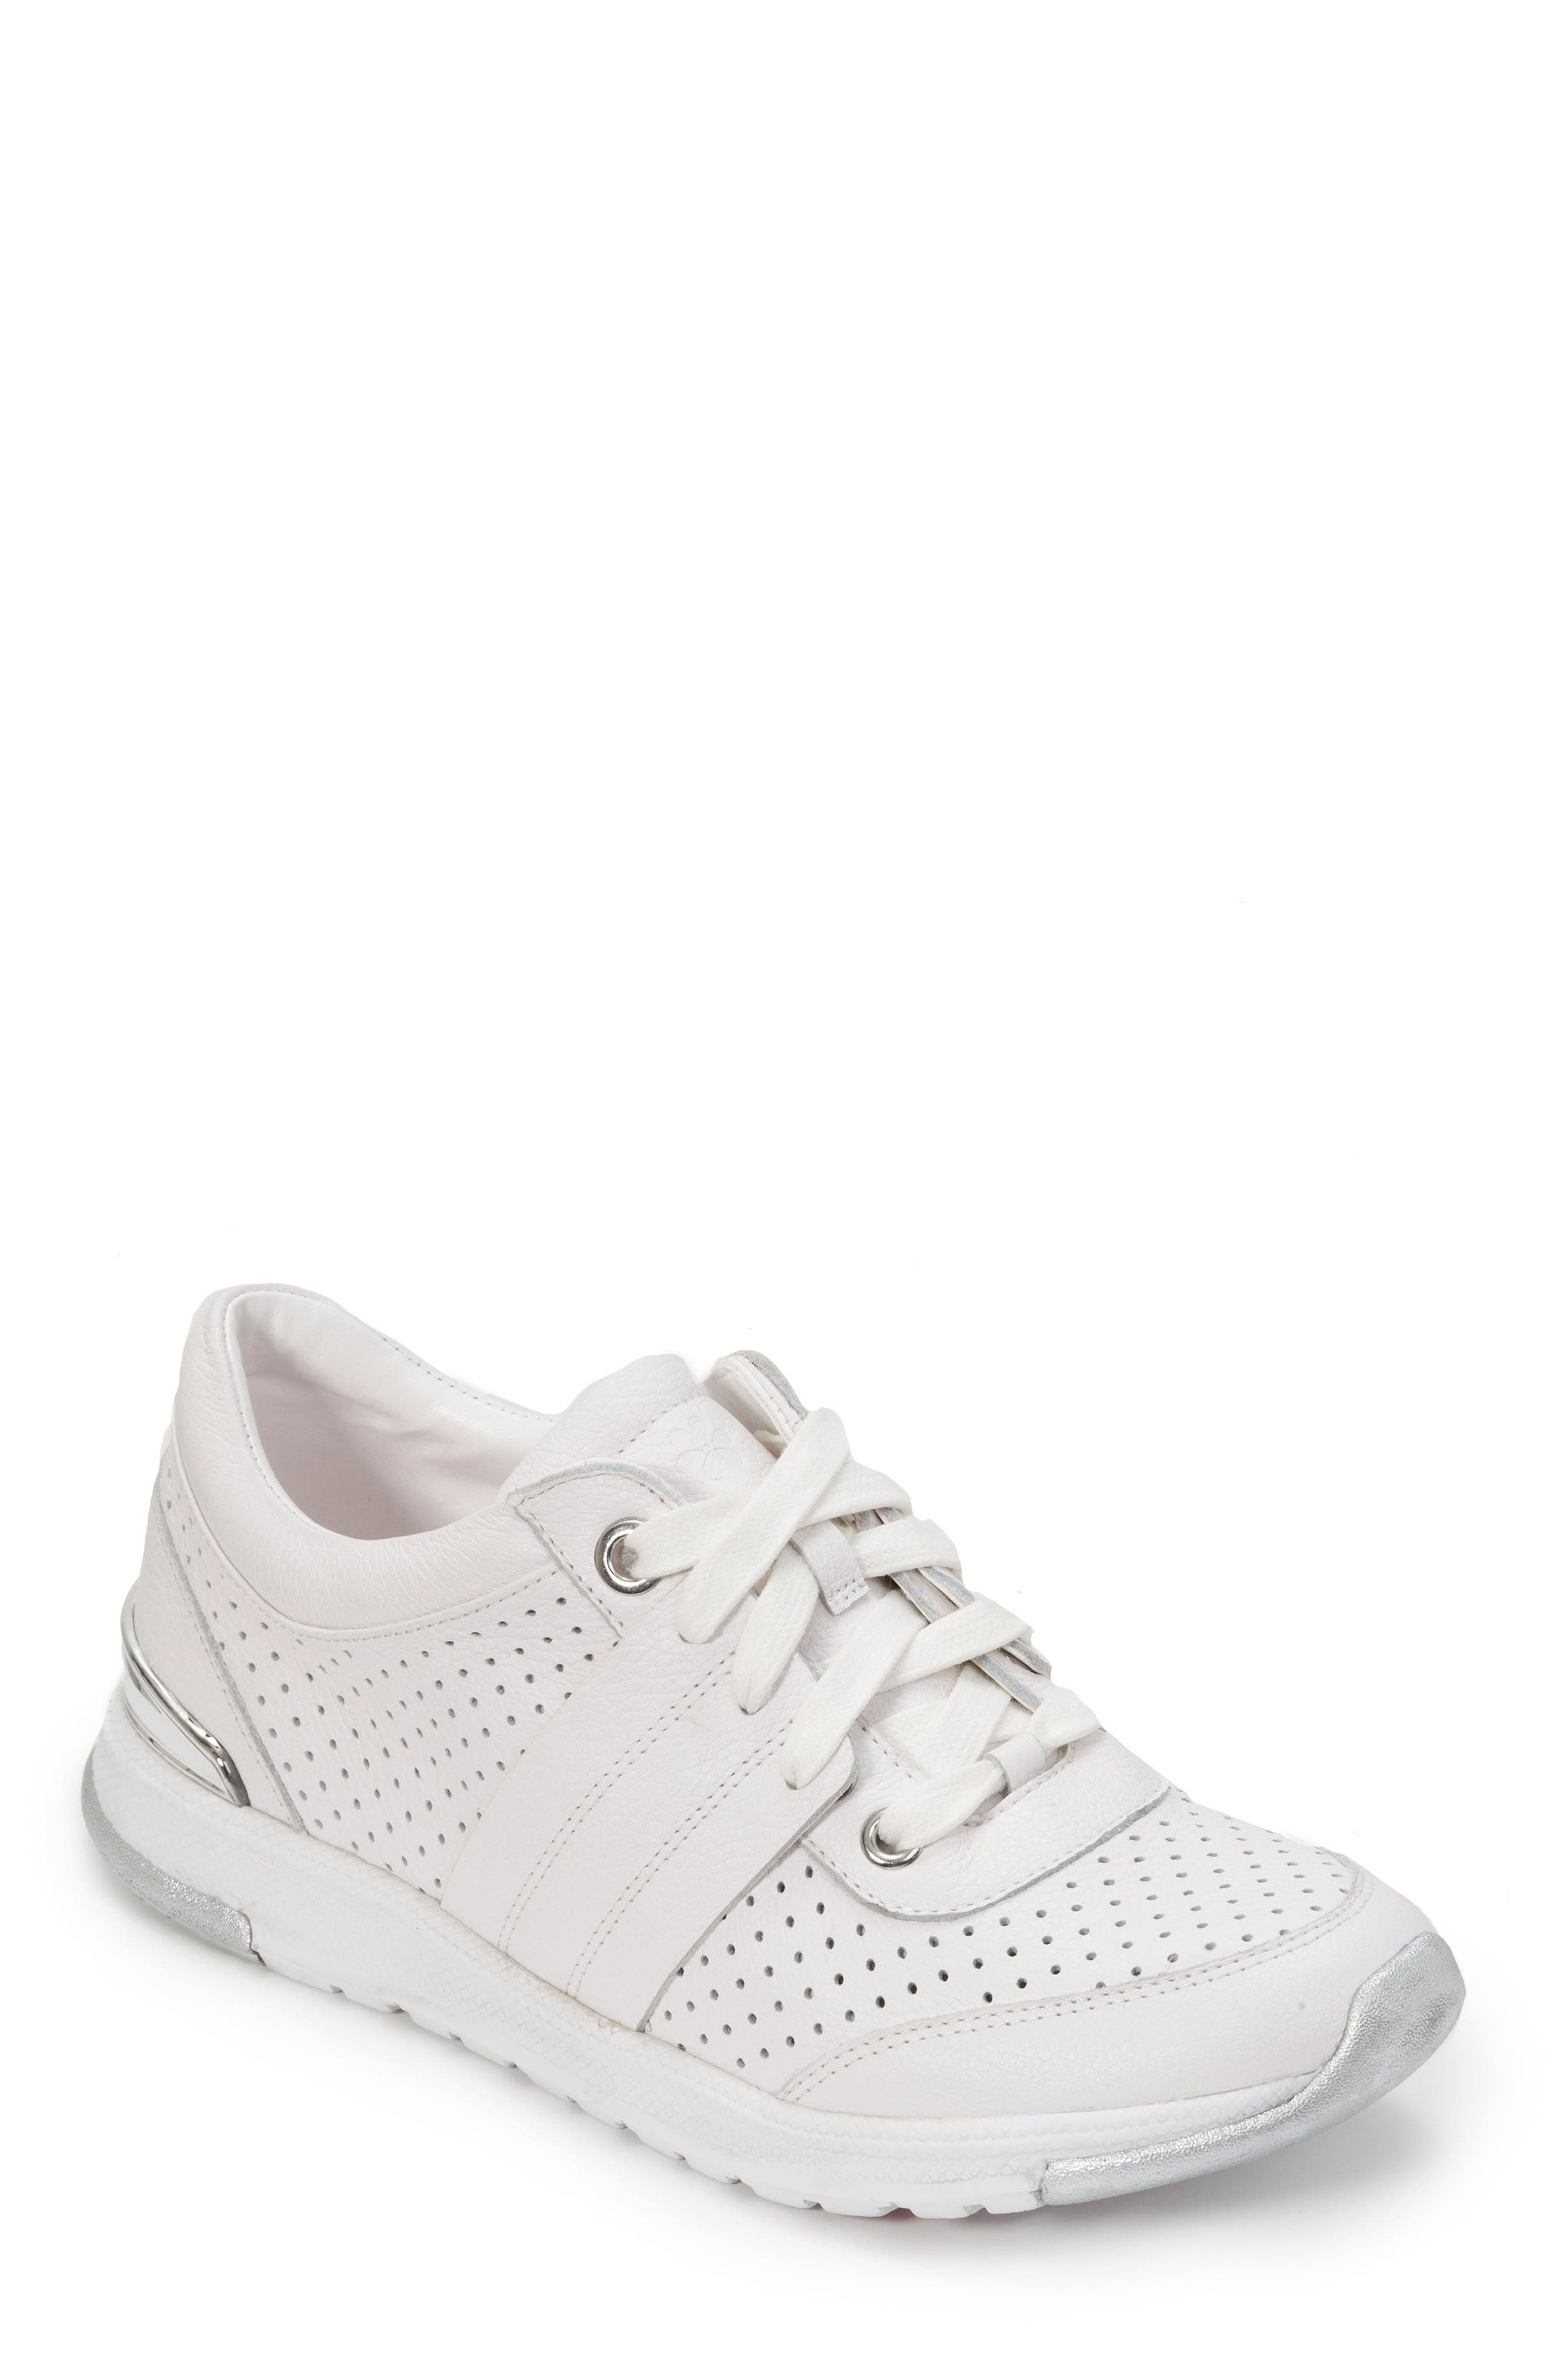 FOOT PETALS, Bea Sneaker, Main thumbnail 1, color, WHITE LEATHER